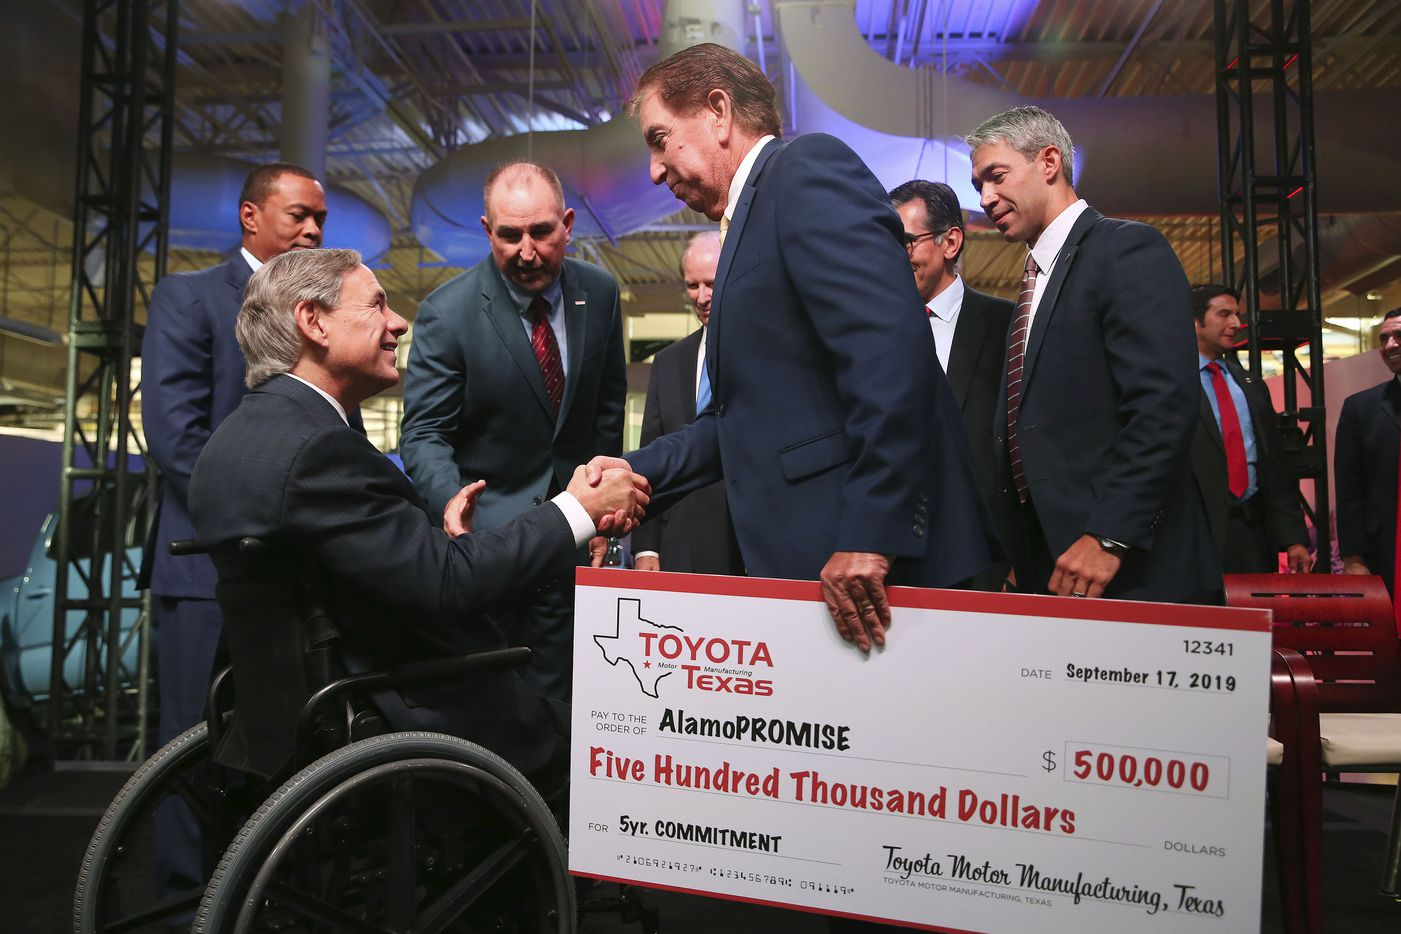 Alamo Colleges District Board of Directors Vice-President Joe Alderete, Jr. shakes hands with Texas Gov. Greg Abbott after an event announcing a $391 million expansion at the San Antonio Toyota plant, Tuesday, Sept. 17, 2019. The district's AlamoPROMISE program will received a $500,000 commitment from Toyota.